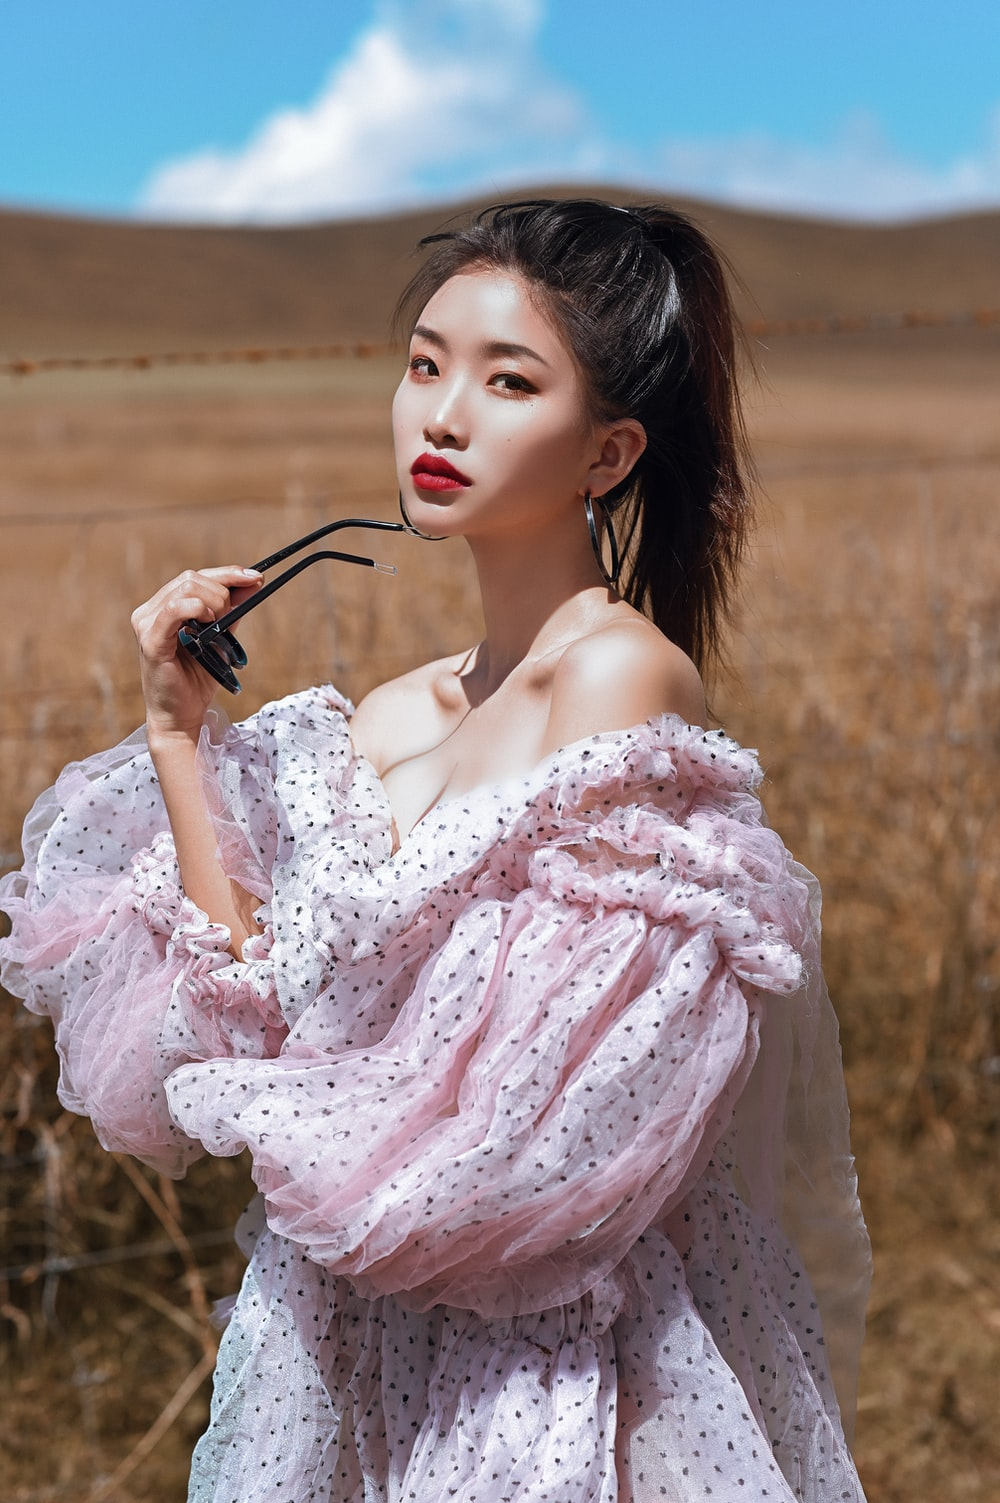 Hot 18 year old asian women wallpaper 350 Korean Girl Pictures Download Free Images On Unsplash